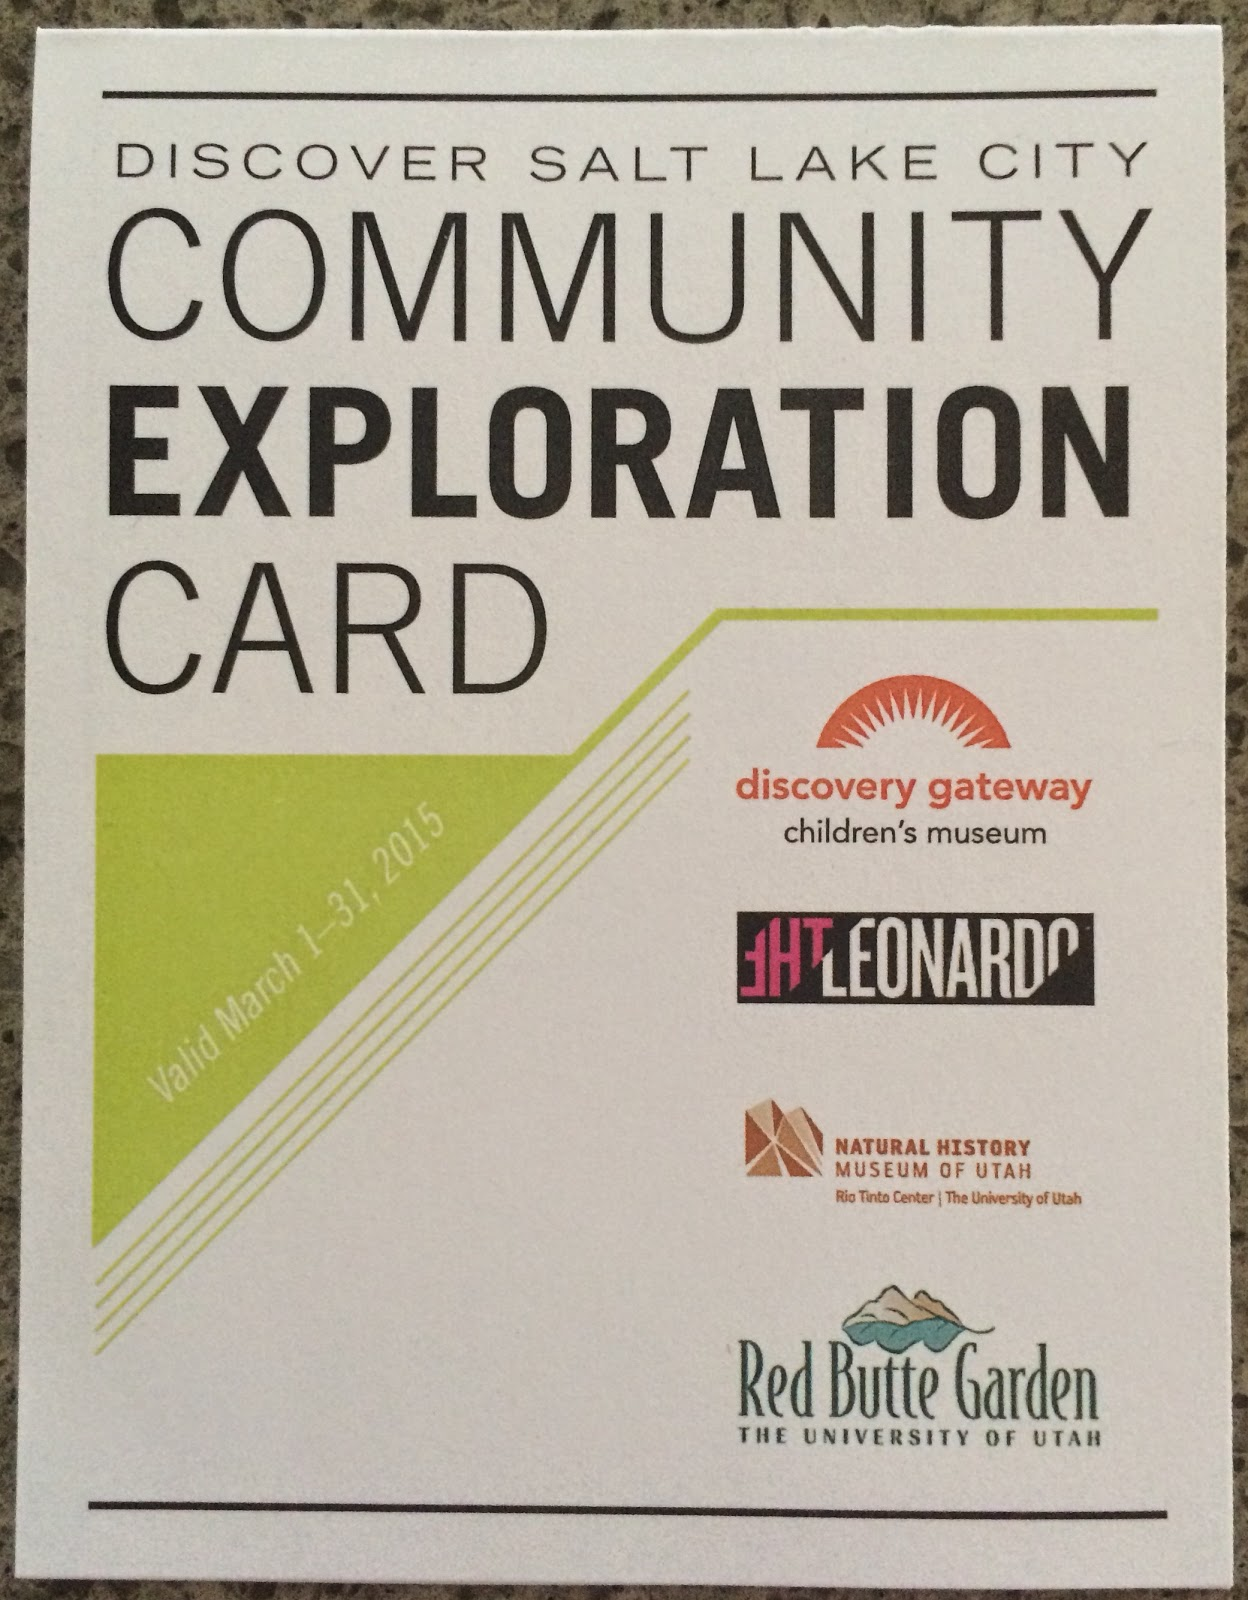 Rebuilding place in the urban space 08012017 09012017 the salt lake city library system has worked out an arrangement with five local cultural facilities discovery gateway the leonardo natural history museum spiritdancerdesigns Gallery